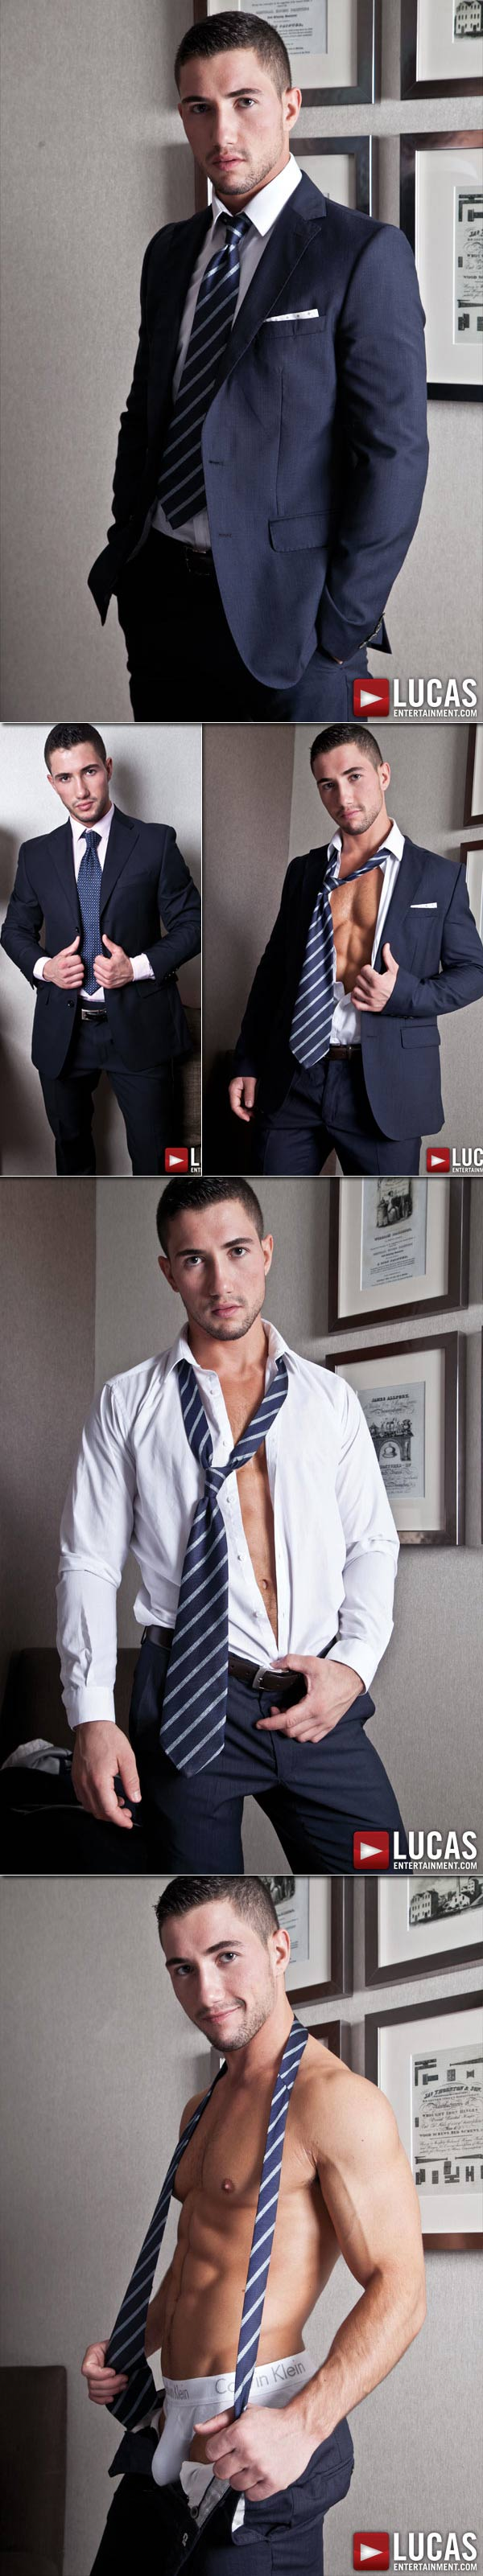 Gentlemen 10: Elite Class (Goran & Marco Rubi) (Scene 5) at LucasEntertainment.com